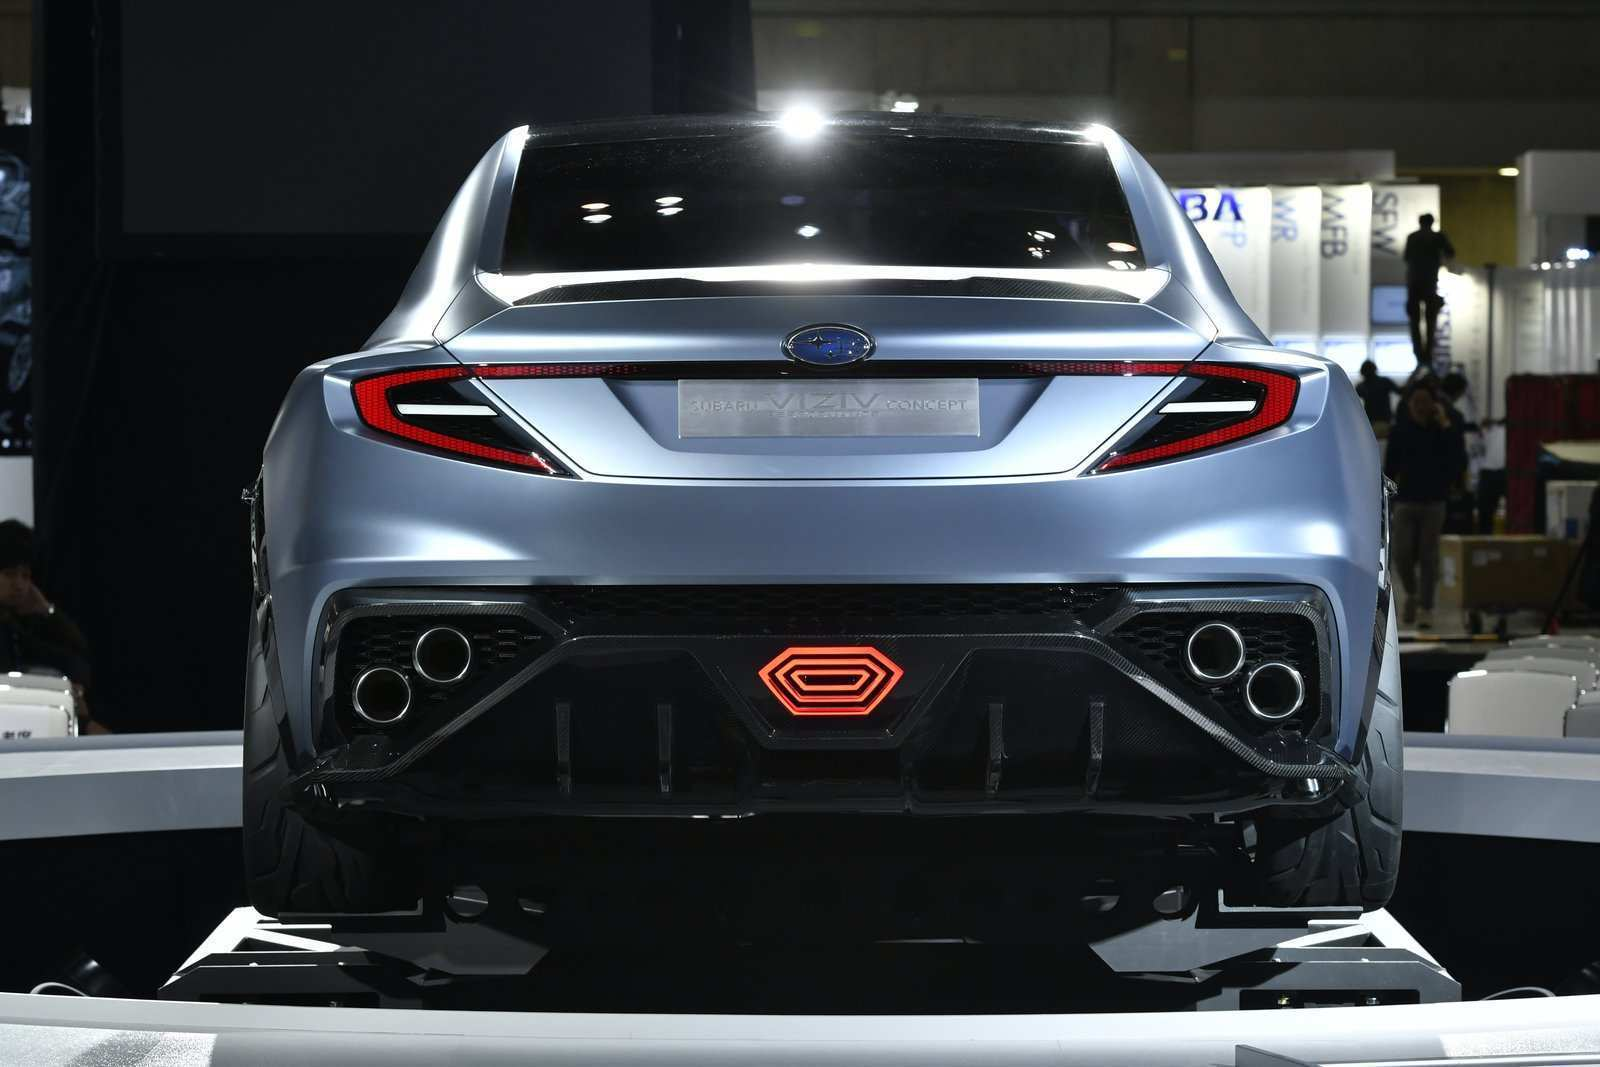 94 New 2020 Subaru Wrx Sti Release Date Exterior And Interior